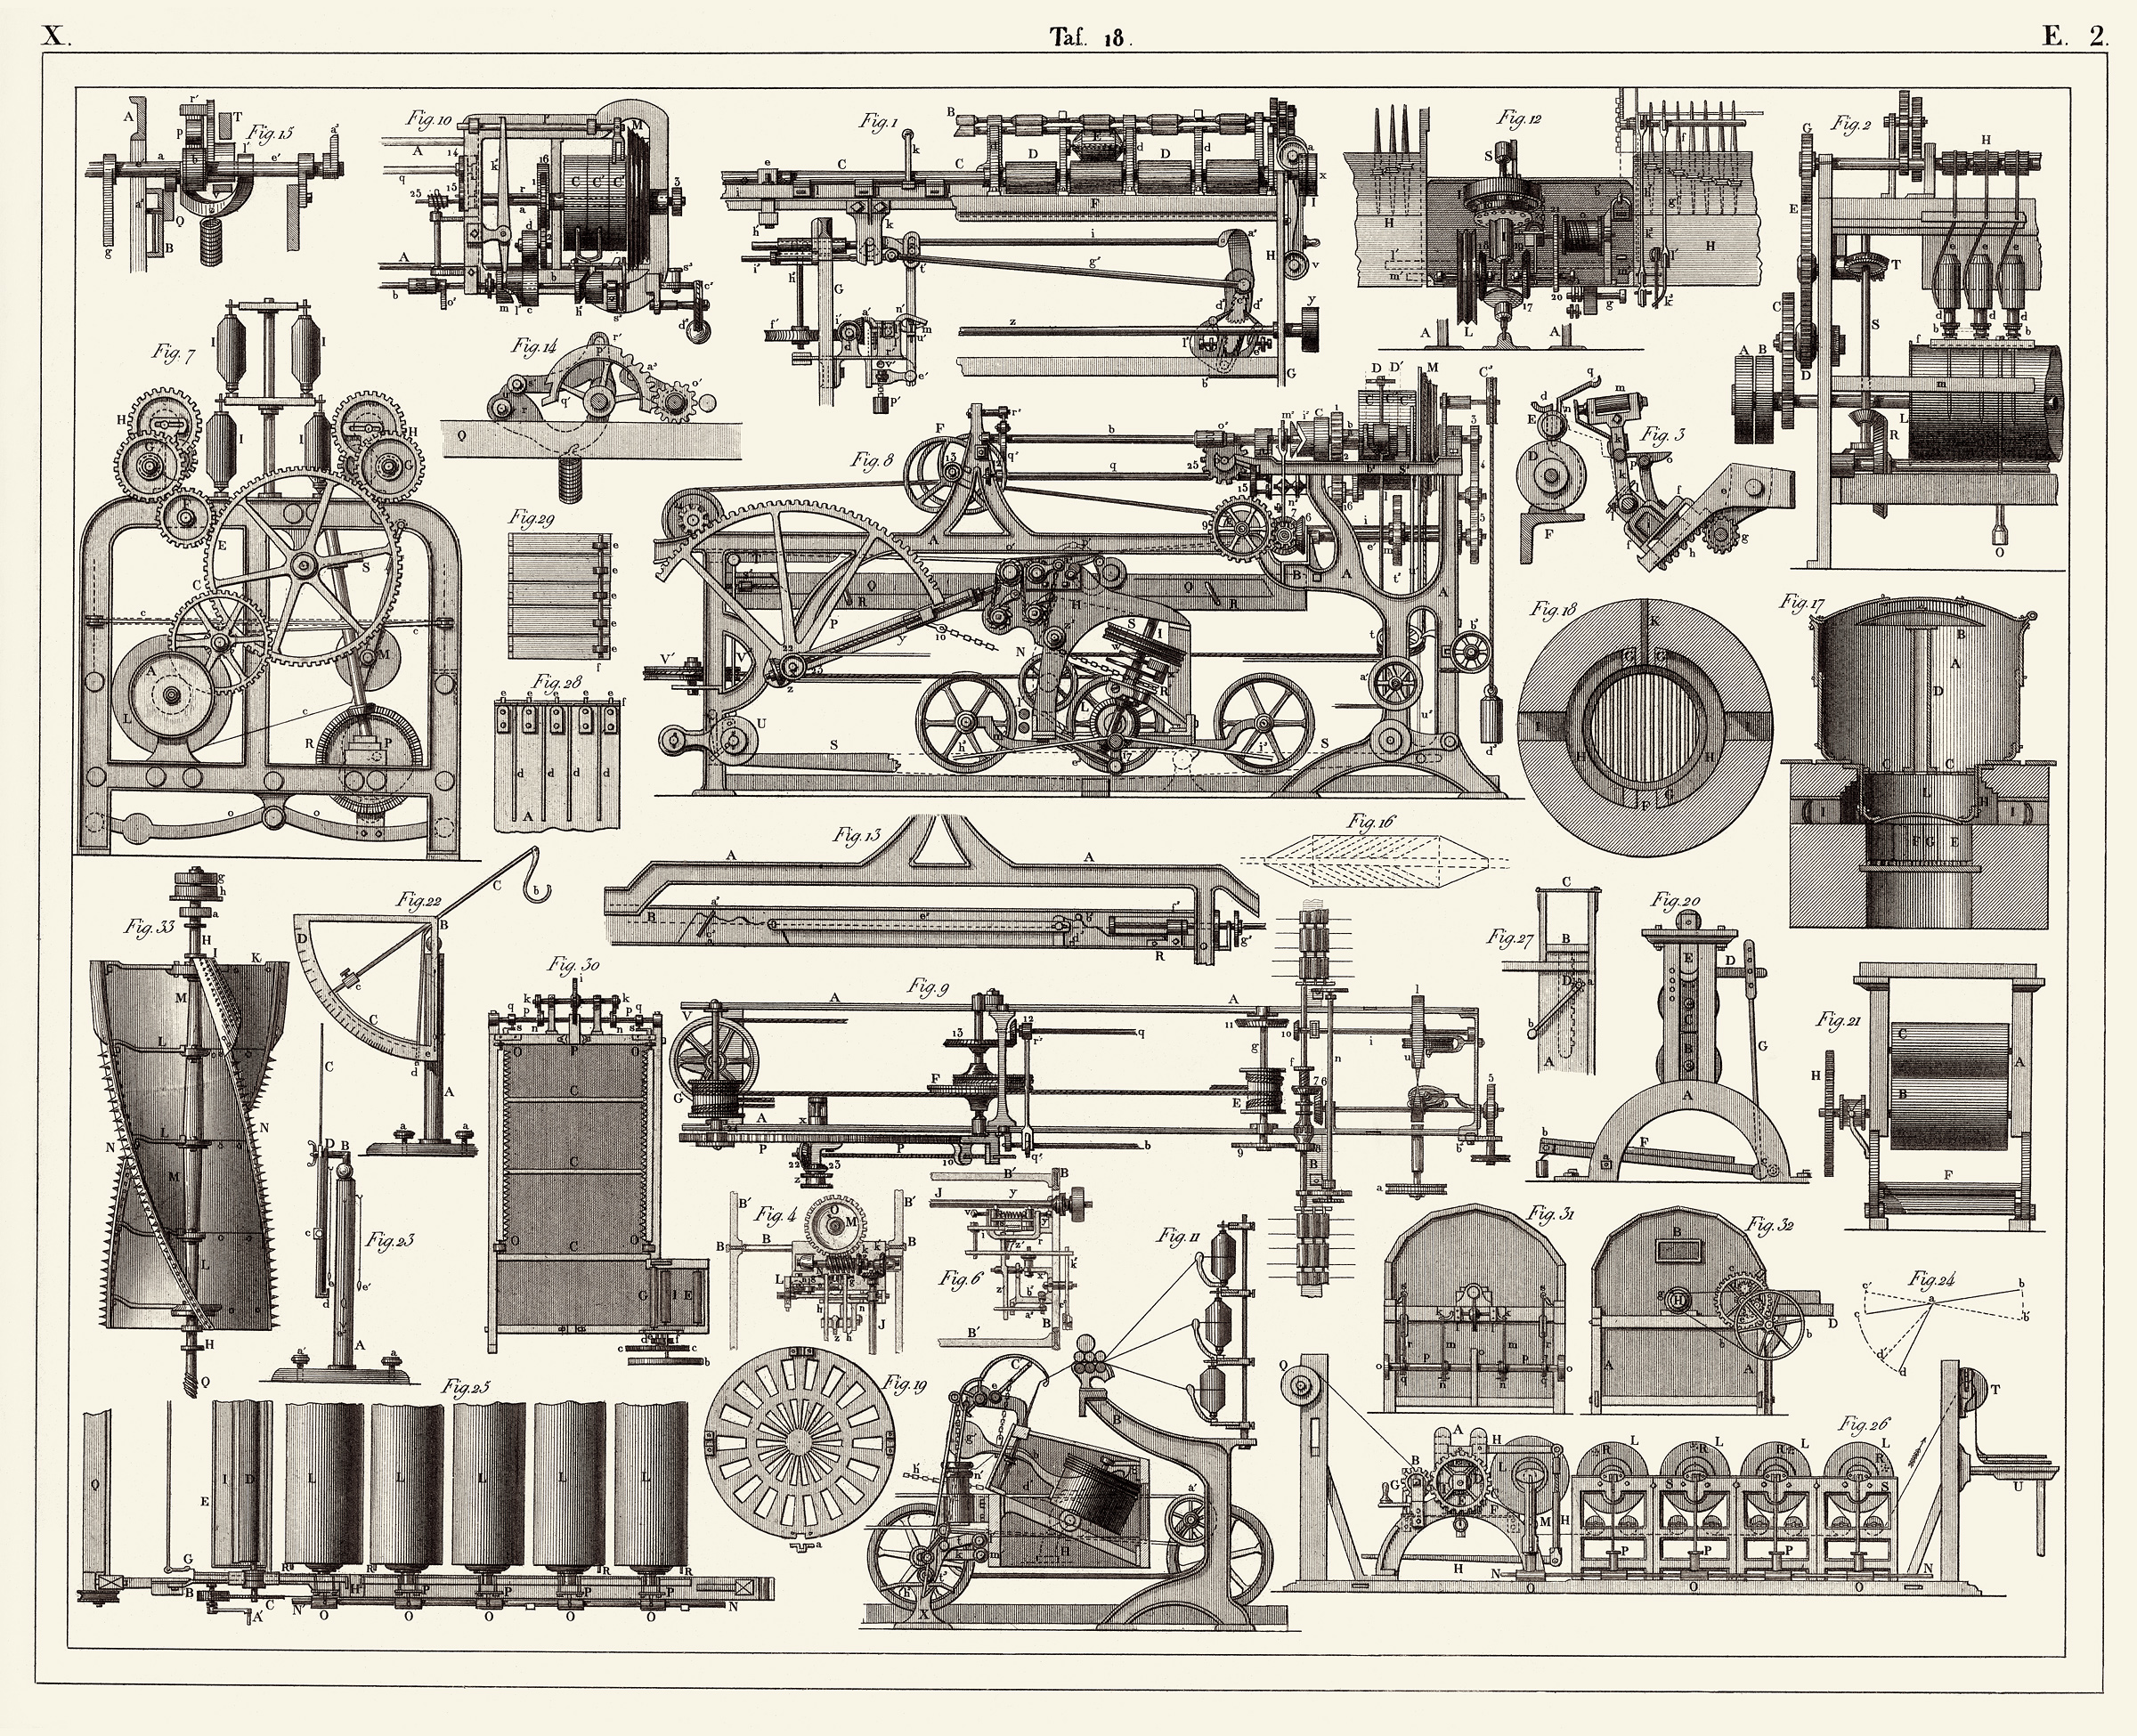 science, engineering, mechanics, geometry, physics, astronomy, chemistry, retro, vintage, steam machine, steampunk, poster, placard, retro science, 19th century, the steam era,